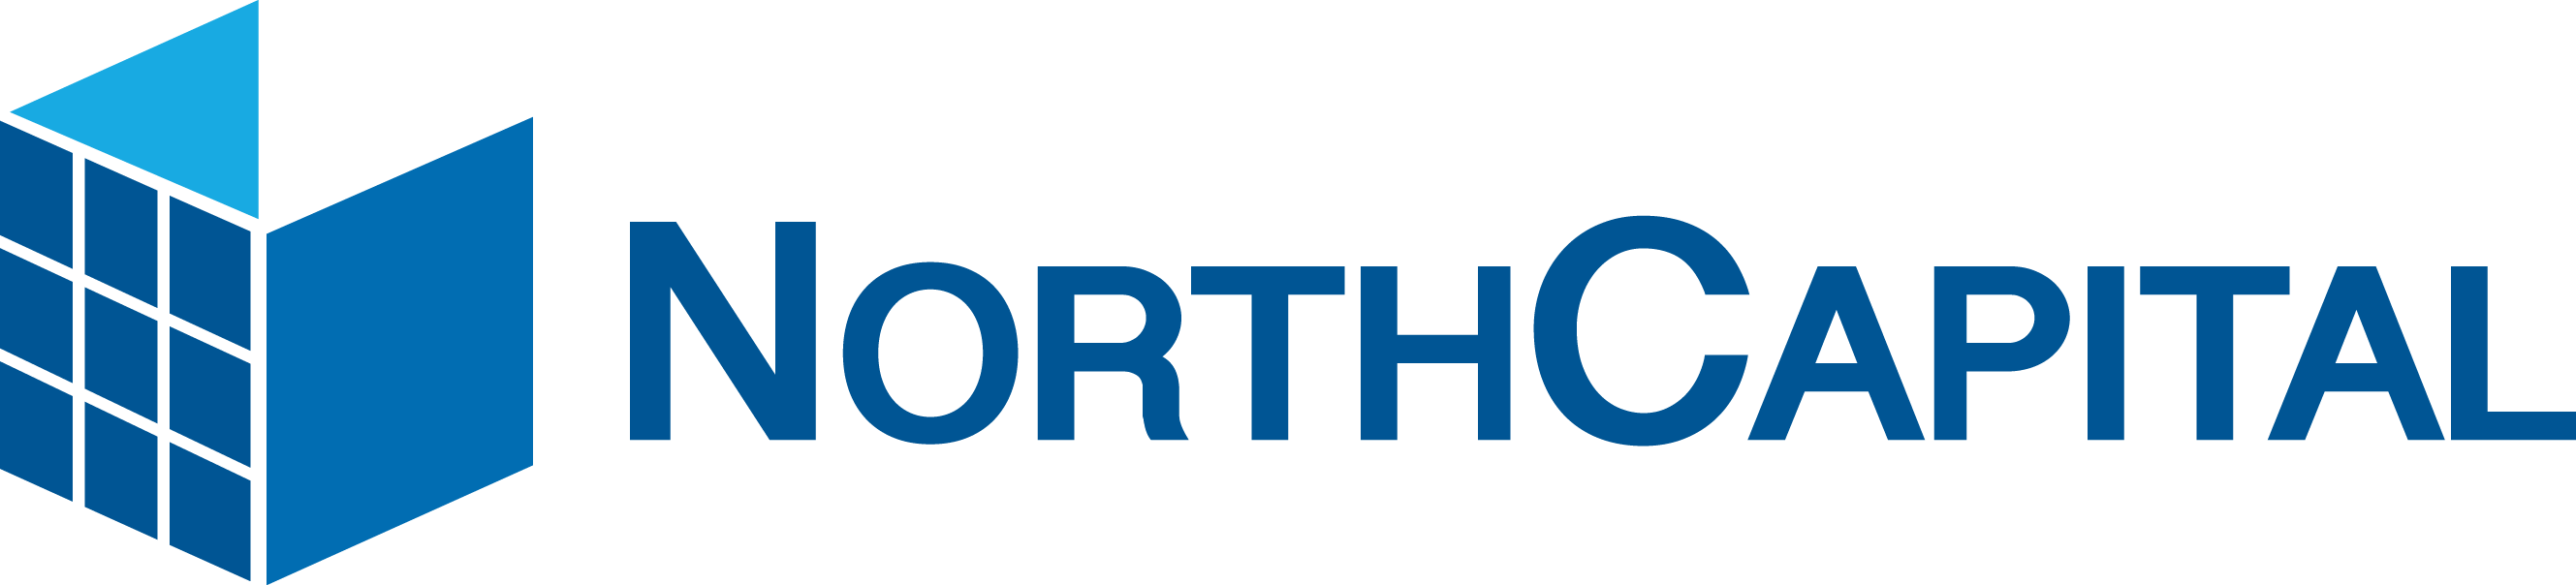 North Capital Announces AI Token to Confirm Verified Accredited Investor Status